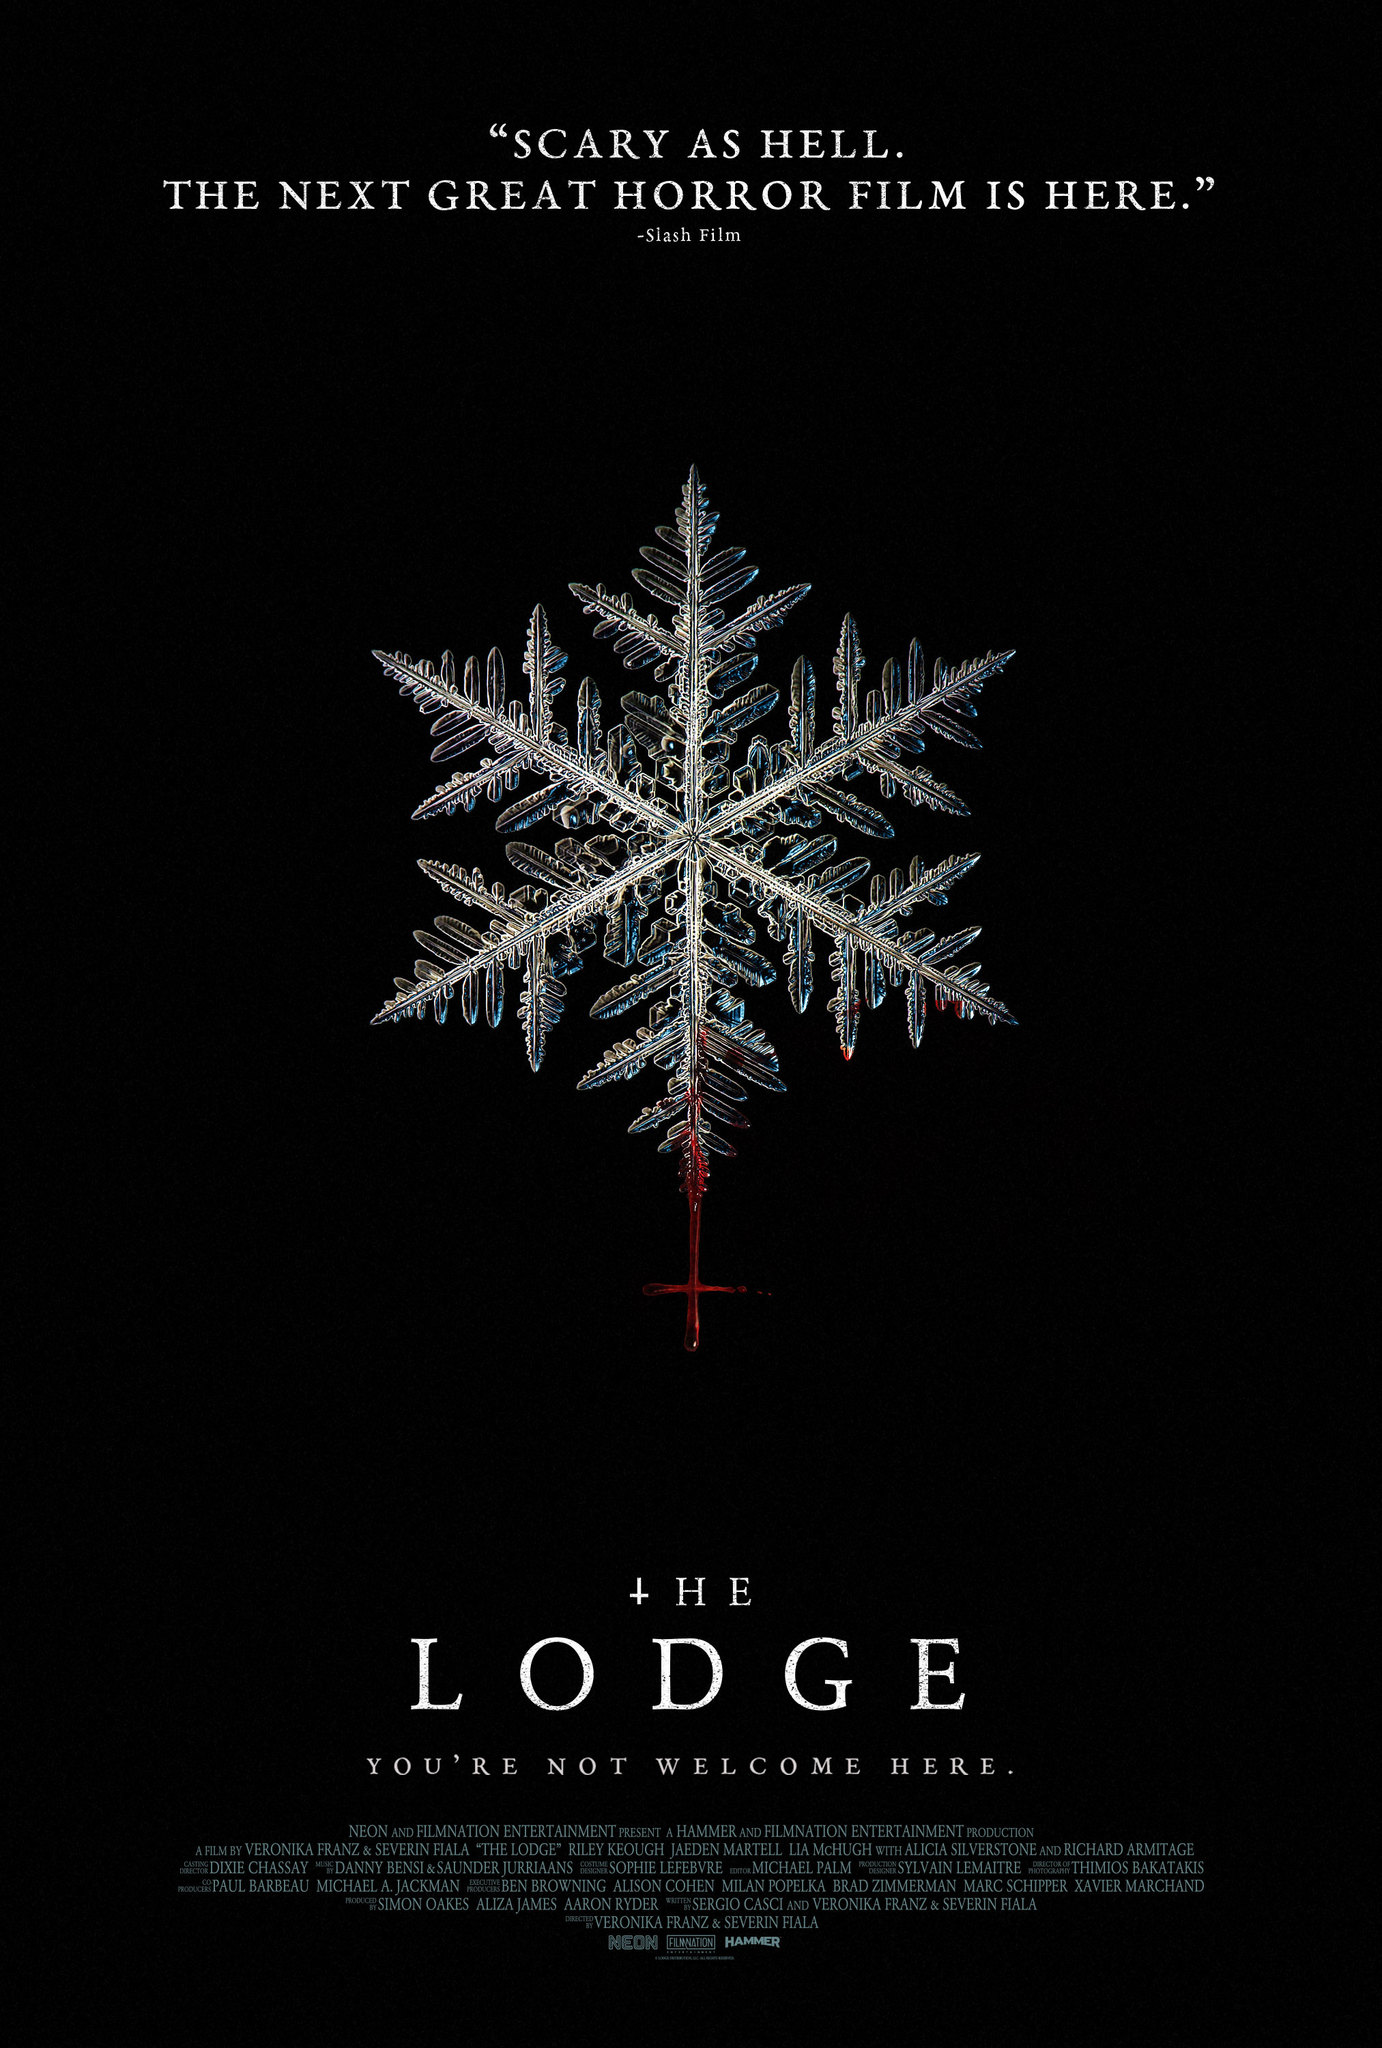 The Lodge Trailer & Poster